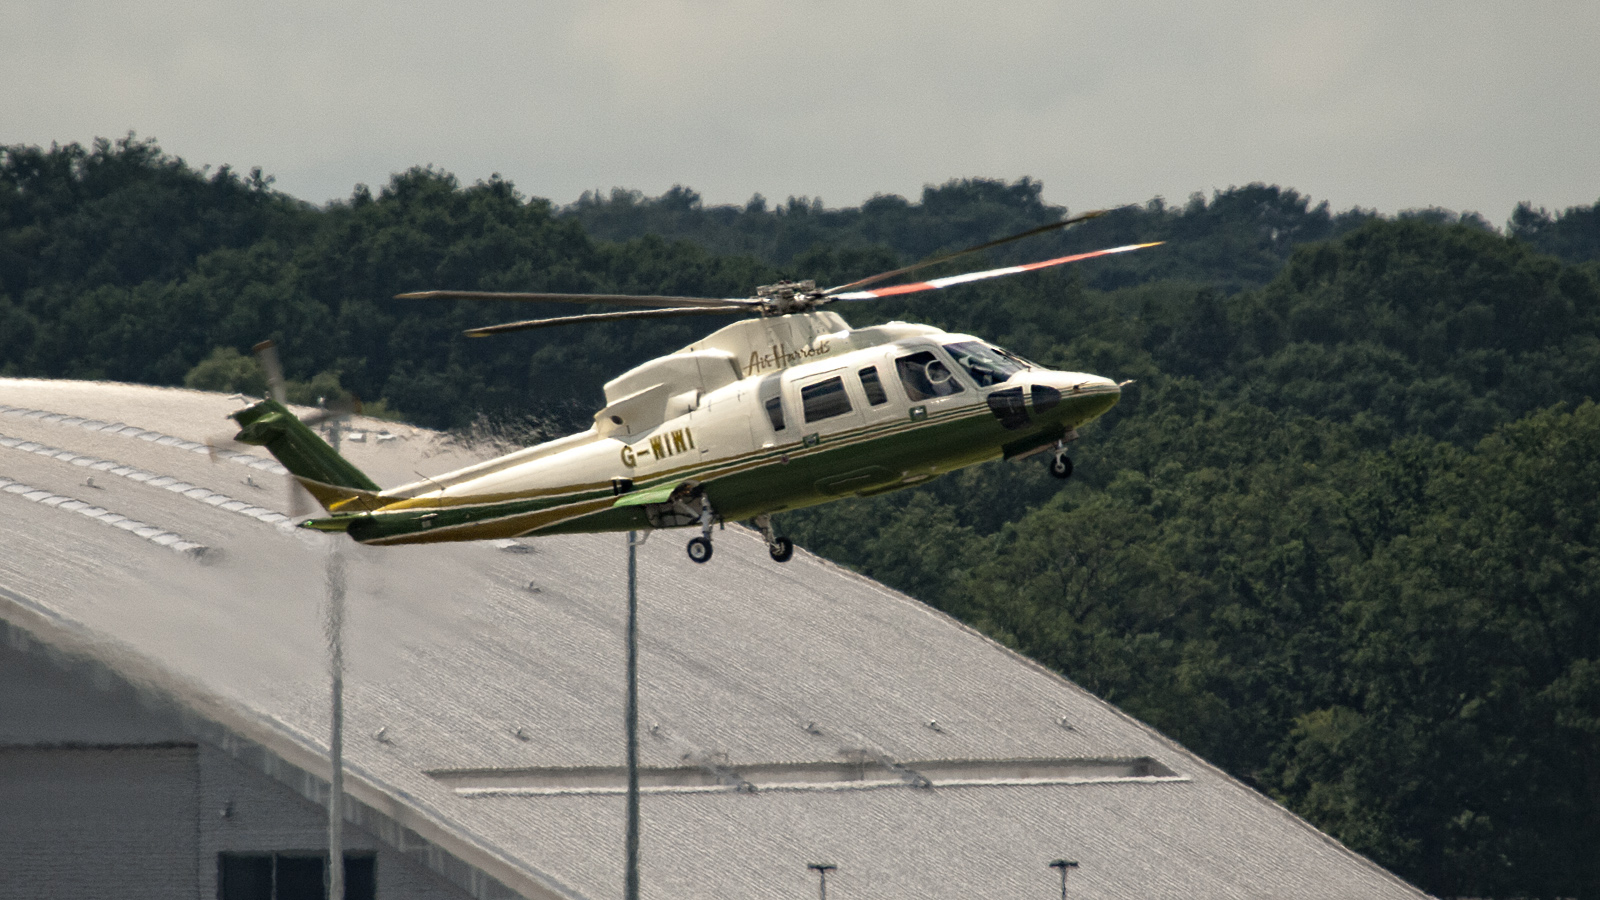 Sikorsky S-76C++ G-WIWI Air Harrods